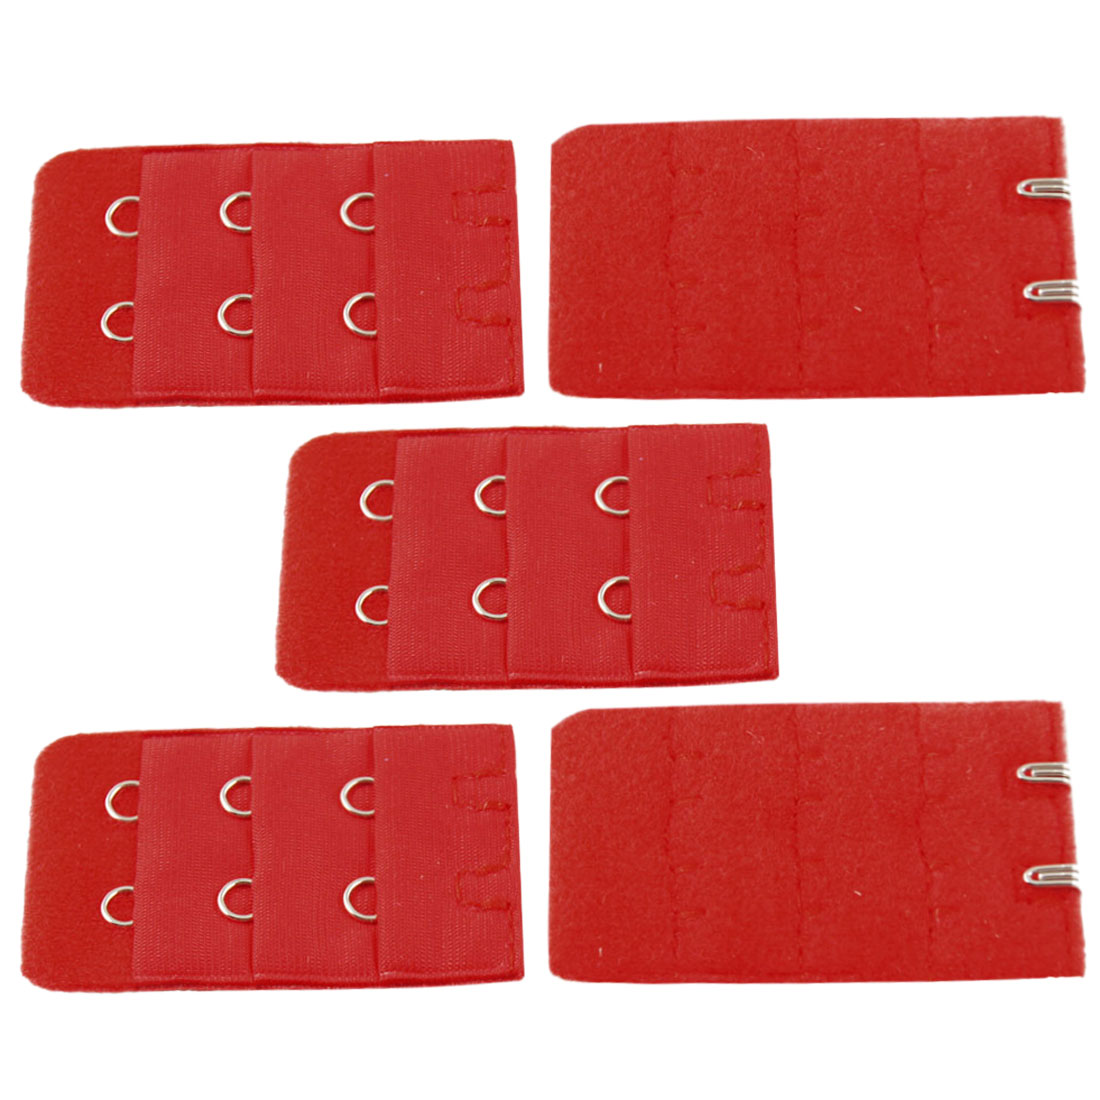 Lady Underwear Buckle Red 2 Hooks 3 Row Bra Strap Extender Hook 5 Pcs